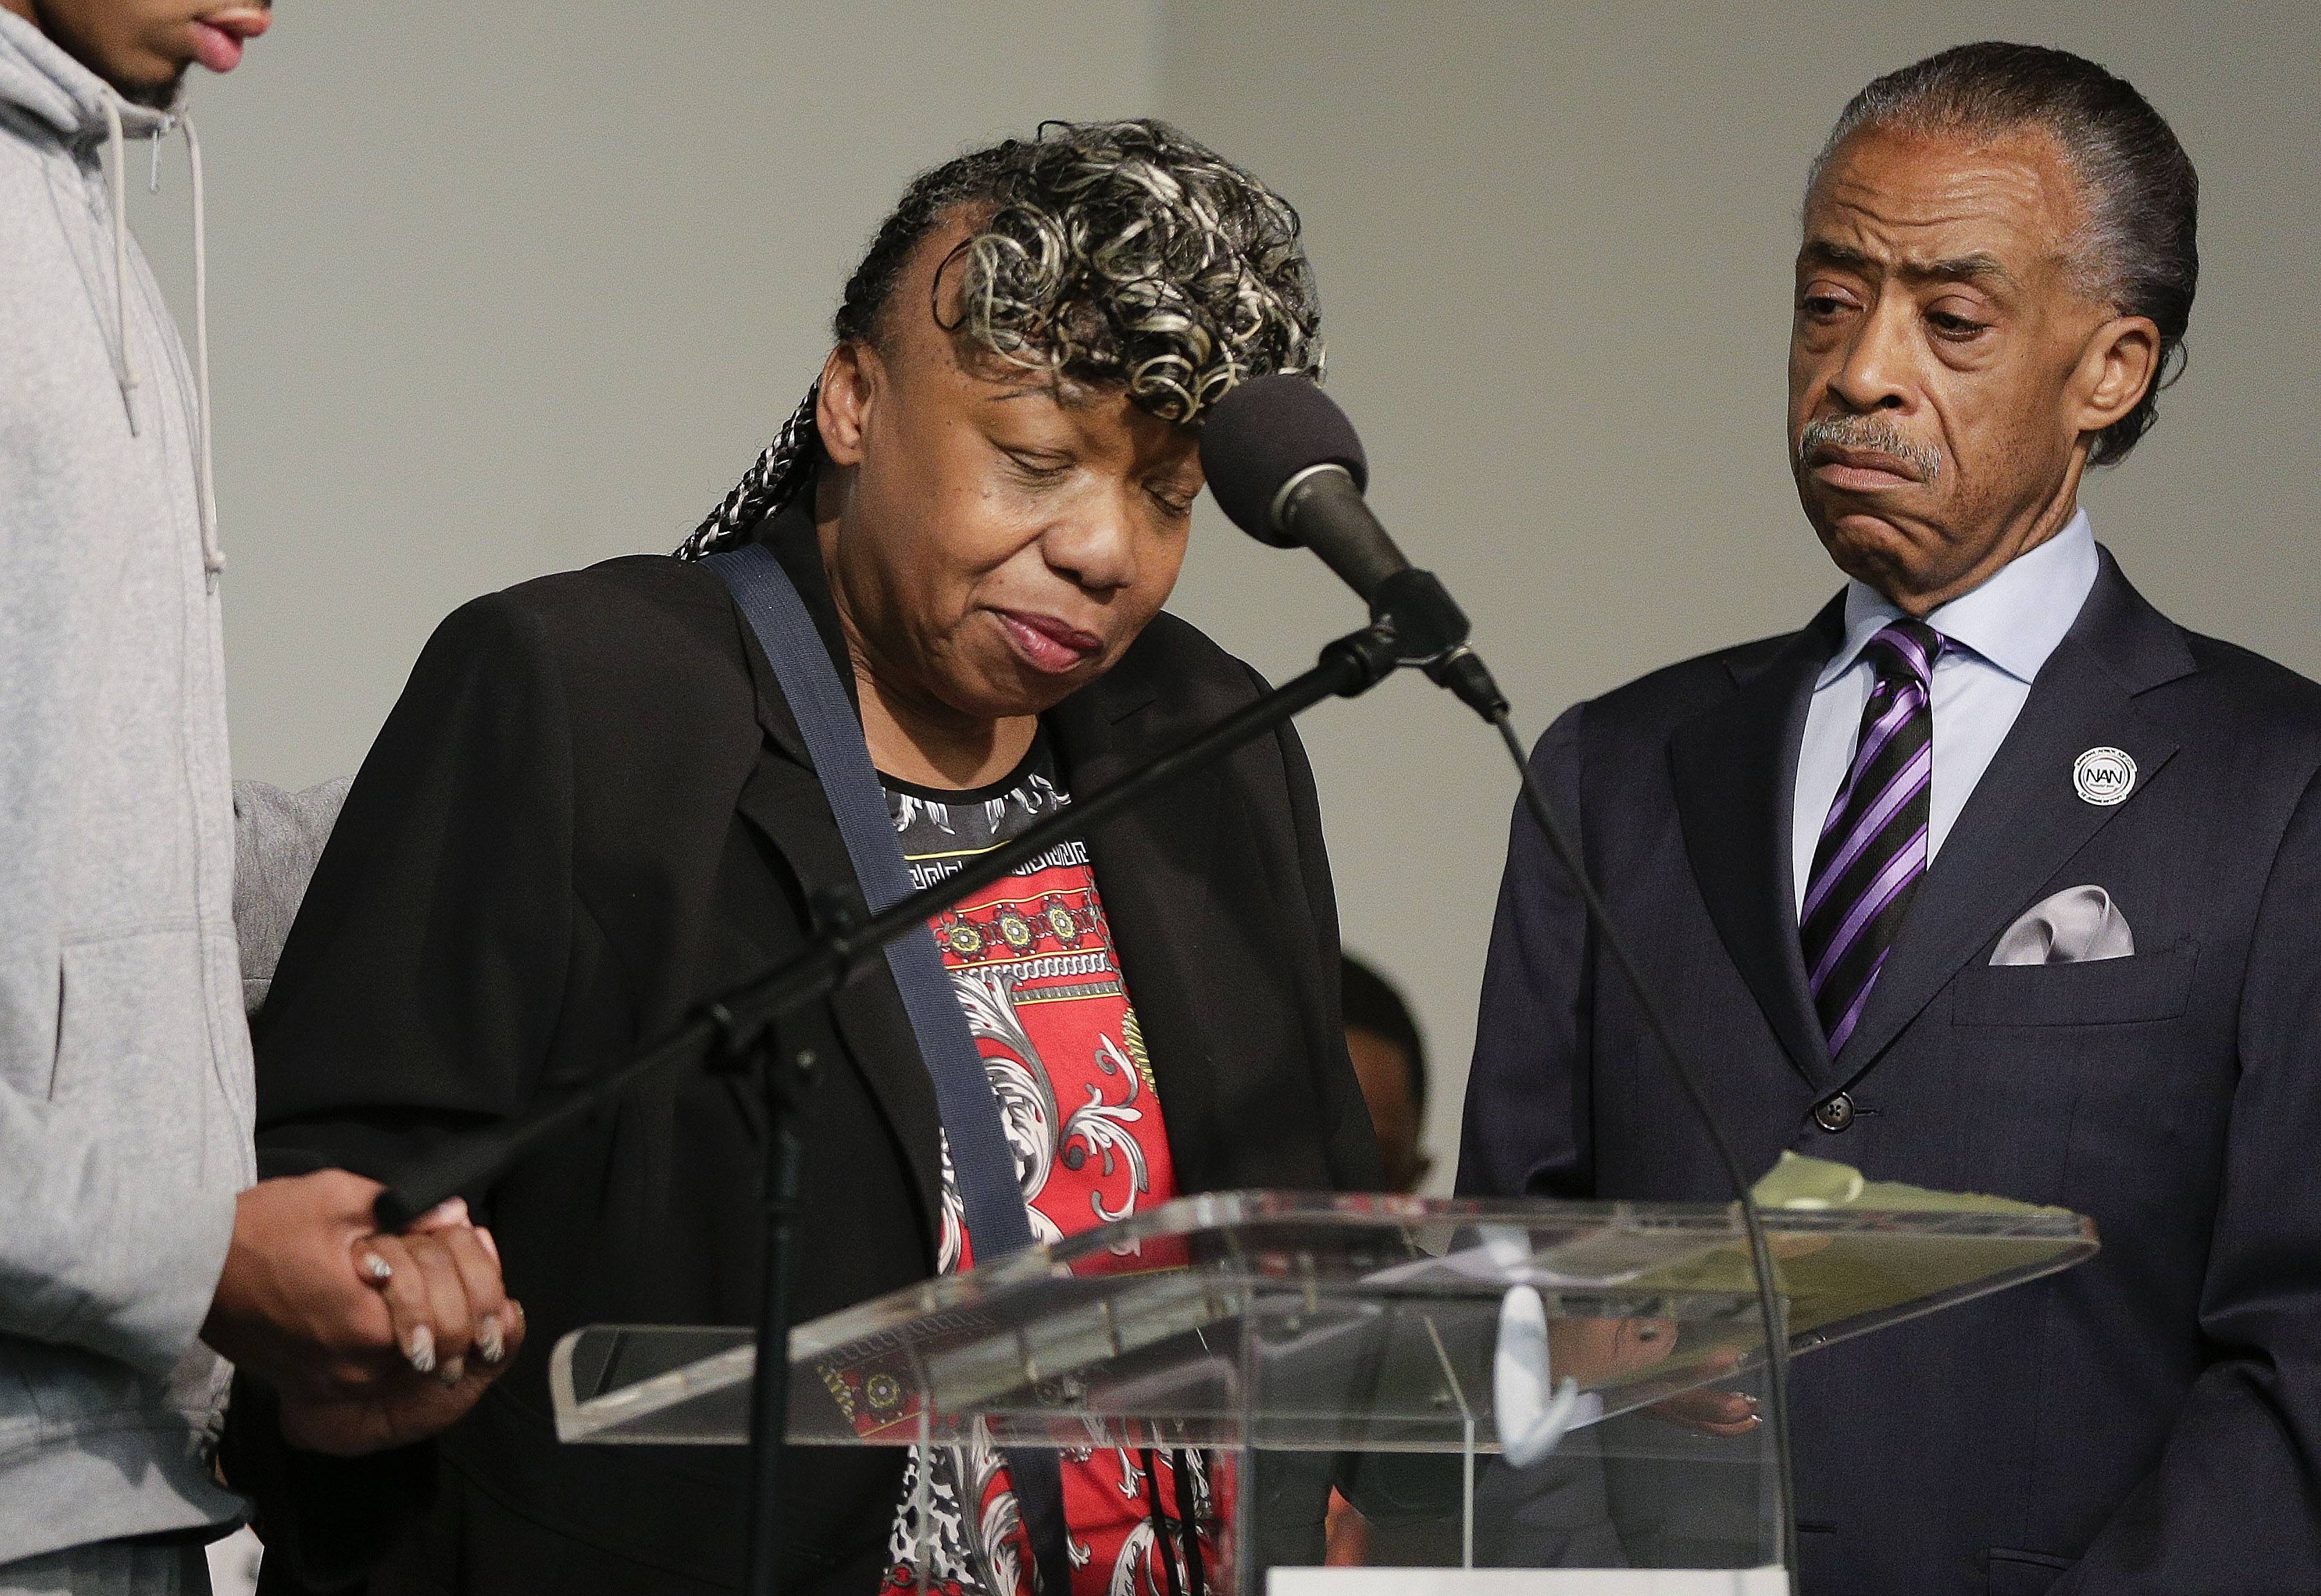 Gwen Carr, left, mother of Eric Garner, speaks Saturday as Rev. Al Sharpton looks on during a rally in New York. The rally was held to address the medical examiner's report that came Friday saying Garner's death was caused by a chokehold, a banned police maneuver.